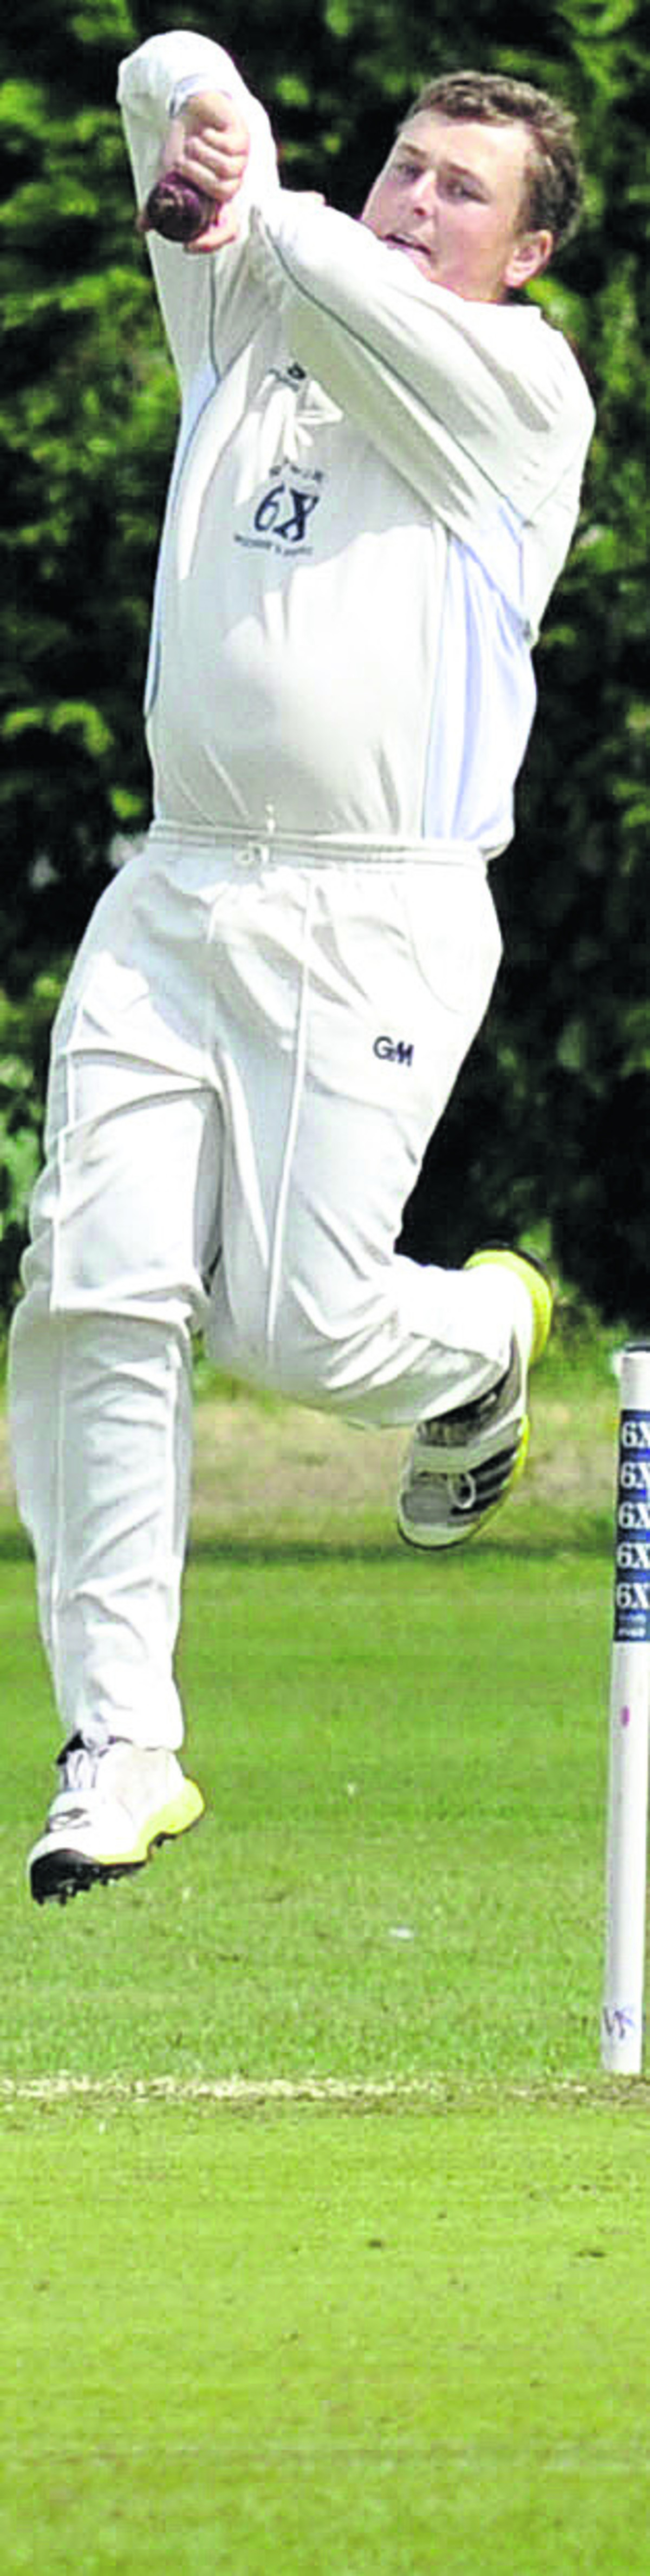 Joe King took six wickets for Wiltshire against Berkshire